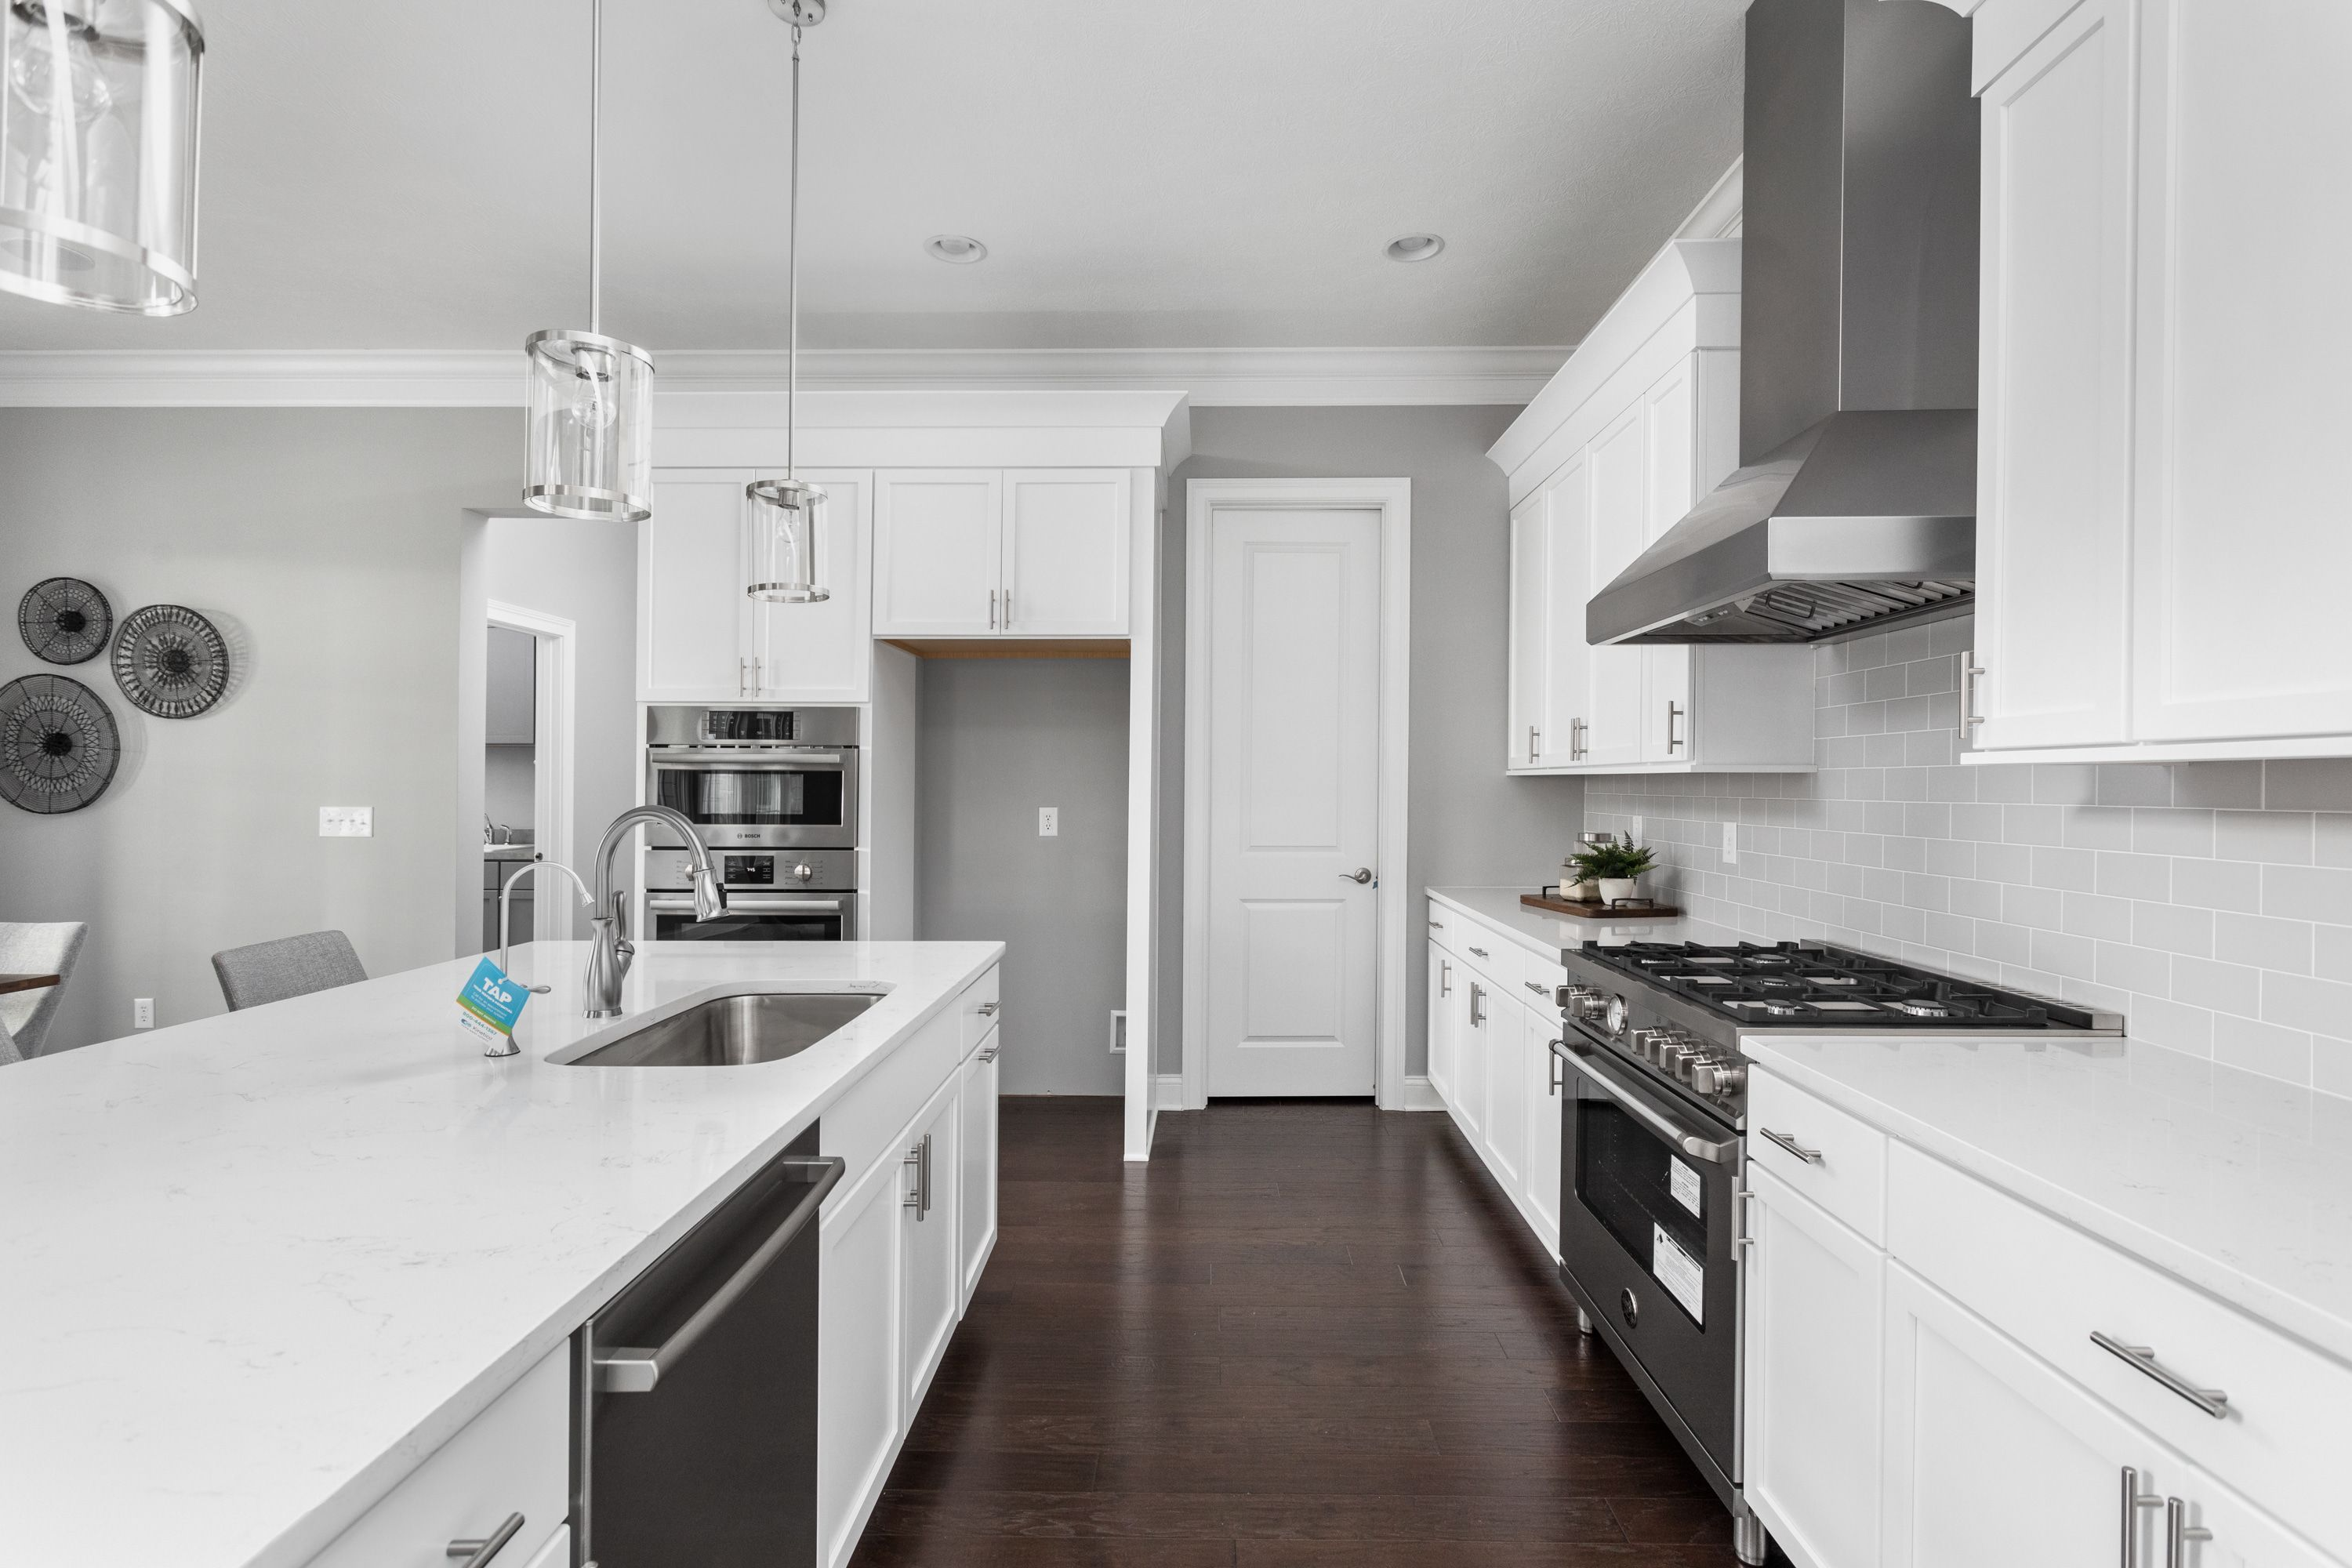 Kitchen featured in the Lockerbie 323 By Estridge Homes in Indianapolis, IN